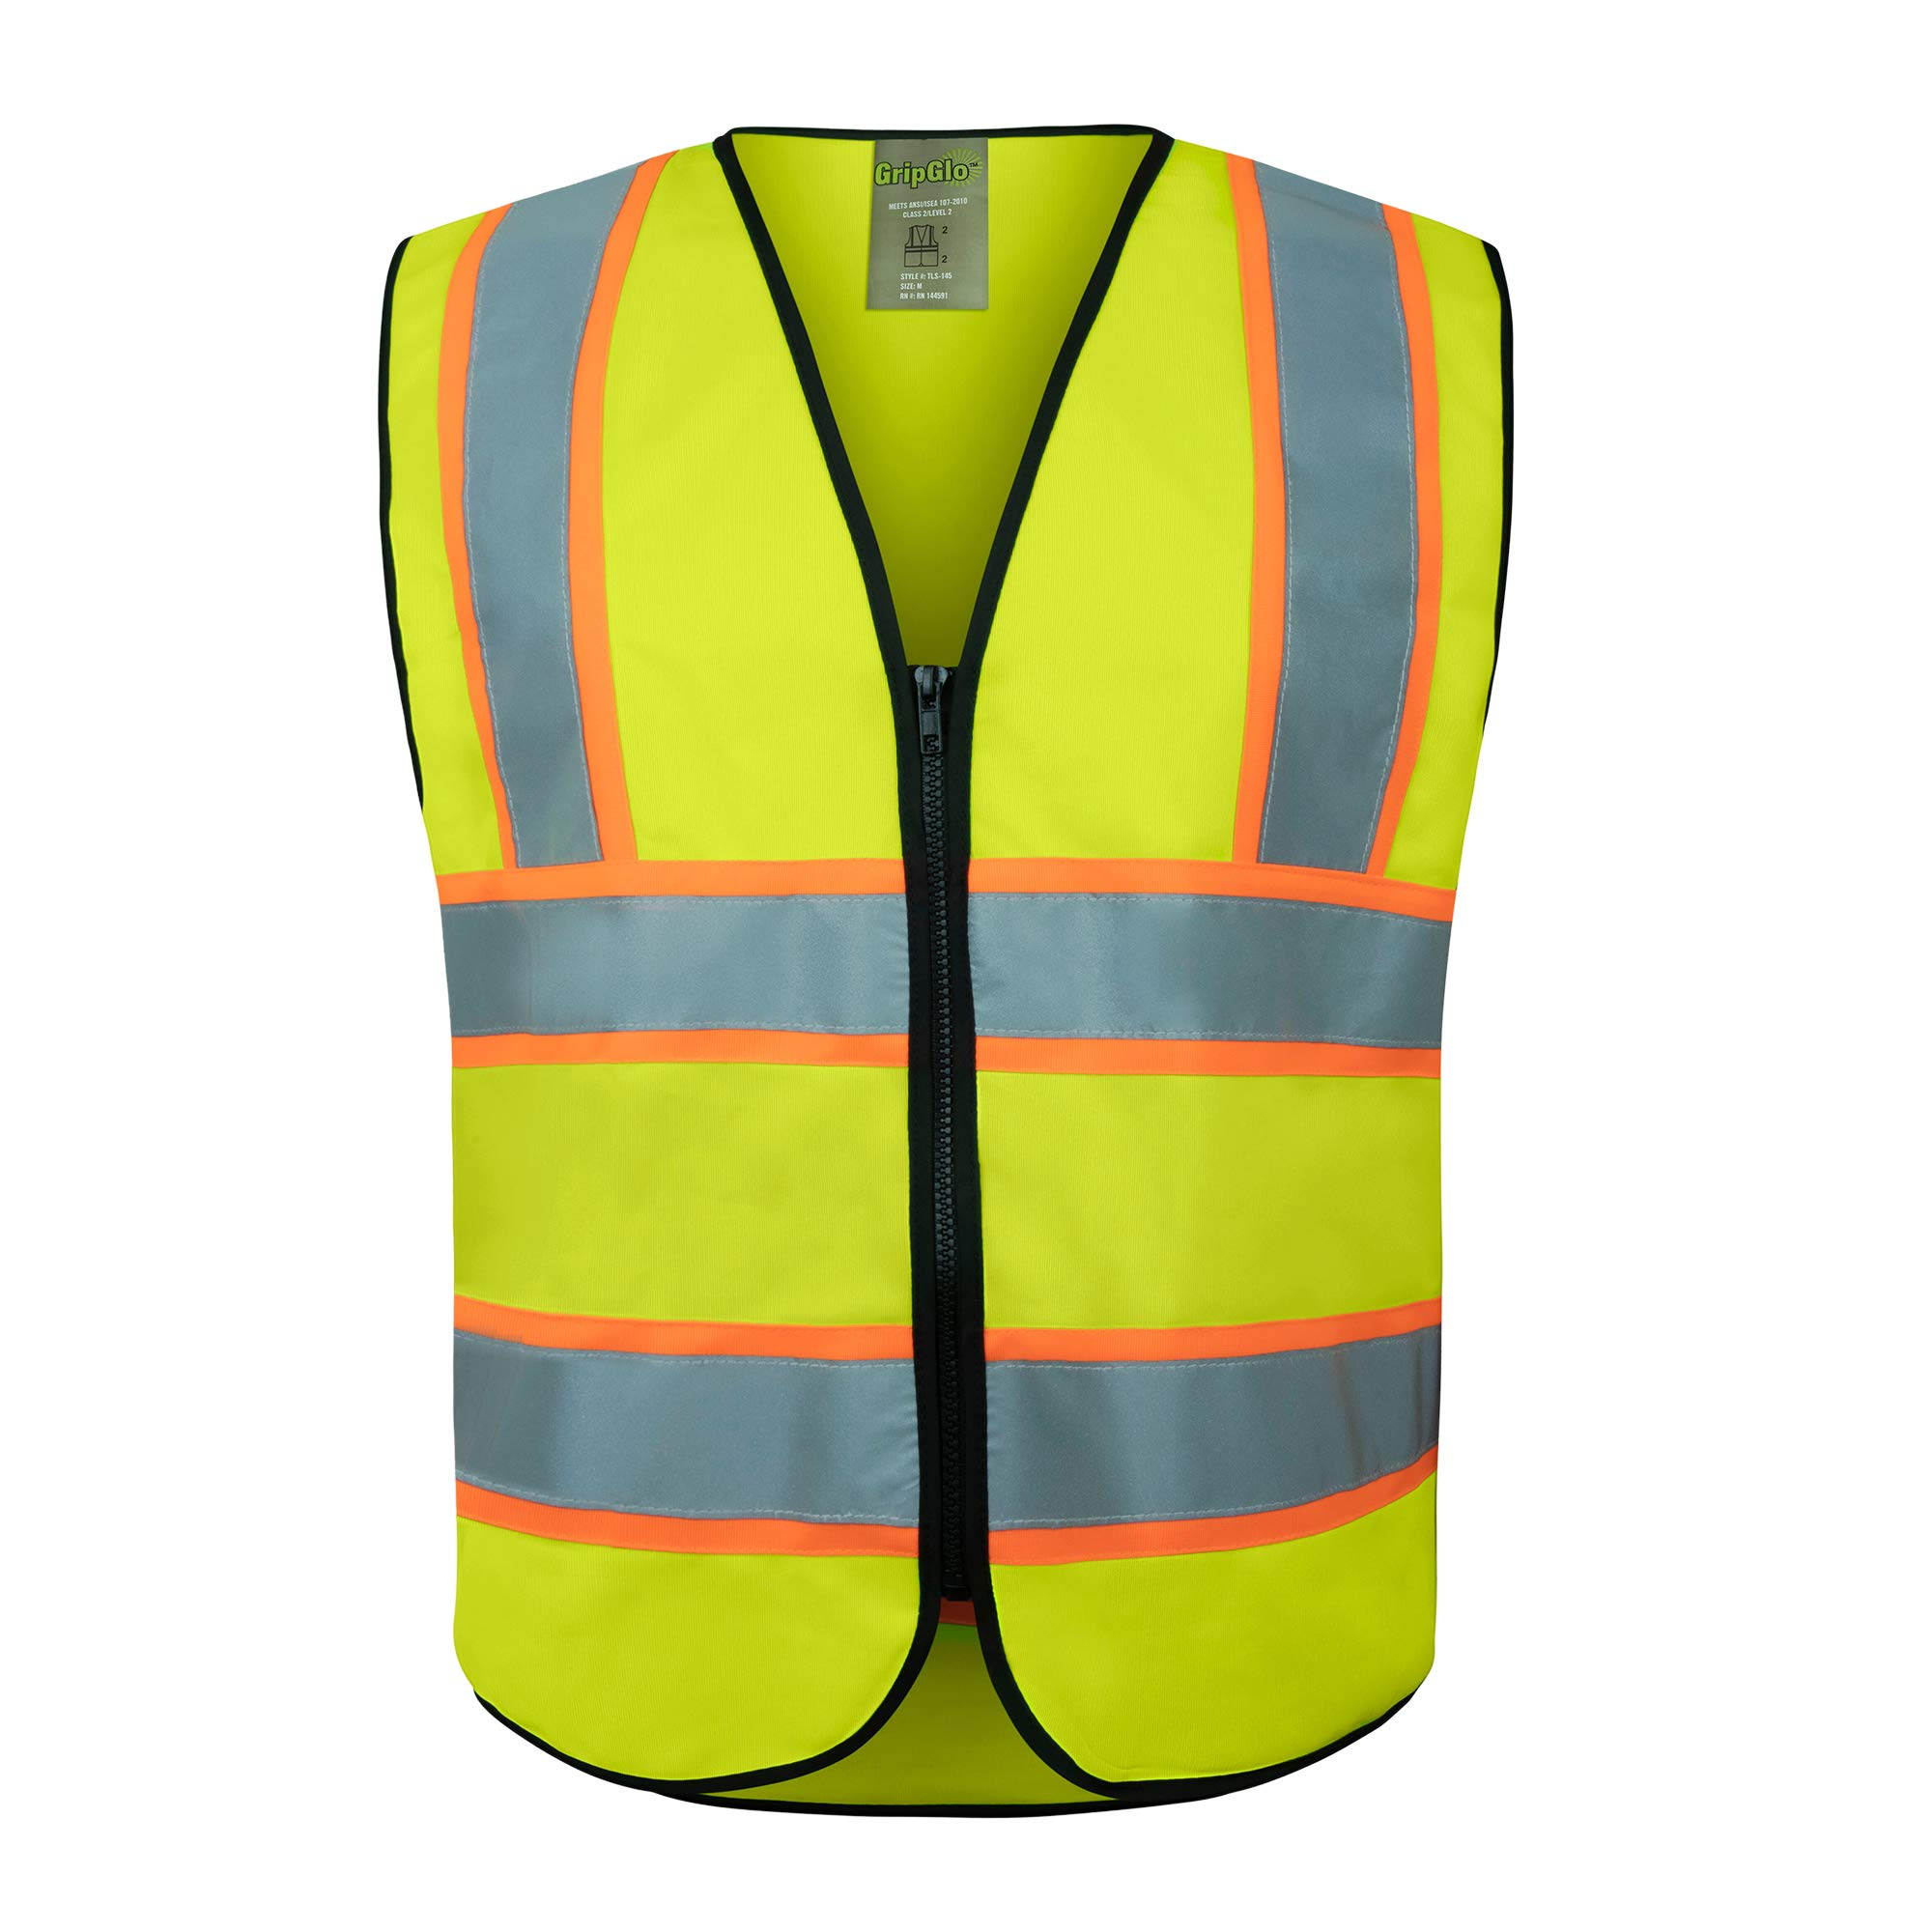 GripGlo Reflective Safety Vest, Bright Neon Color with 2 Inch Reflective Strips - Orange Trim - Zipper Front, X-Large